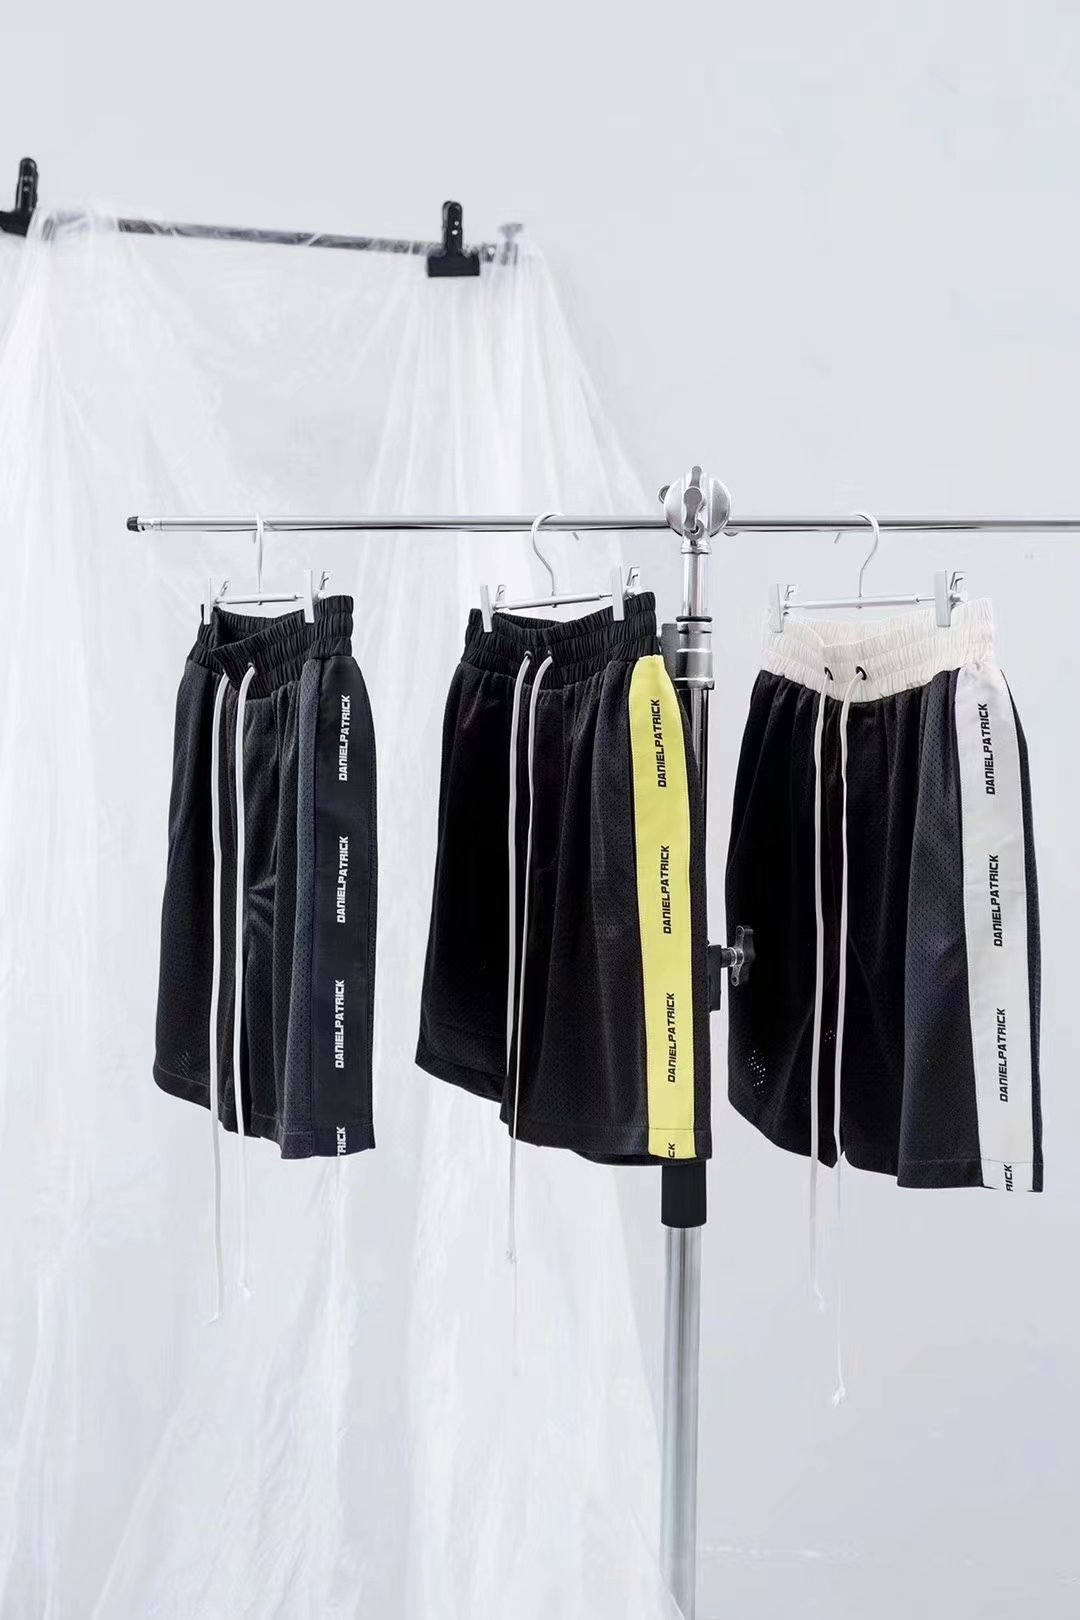 New Youth Popular mens casual sports loose double mesh breathable fabric trimmed shorts